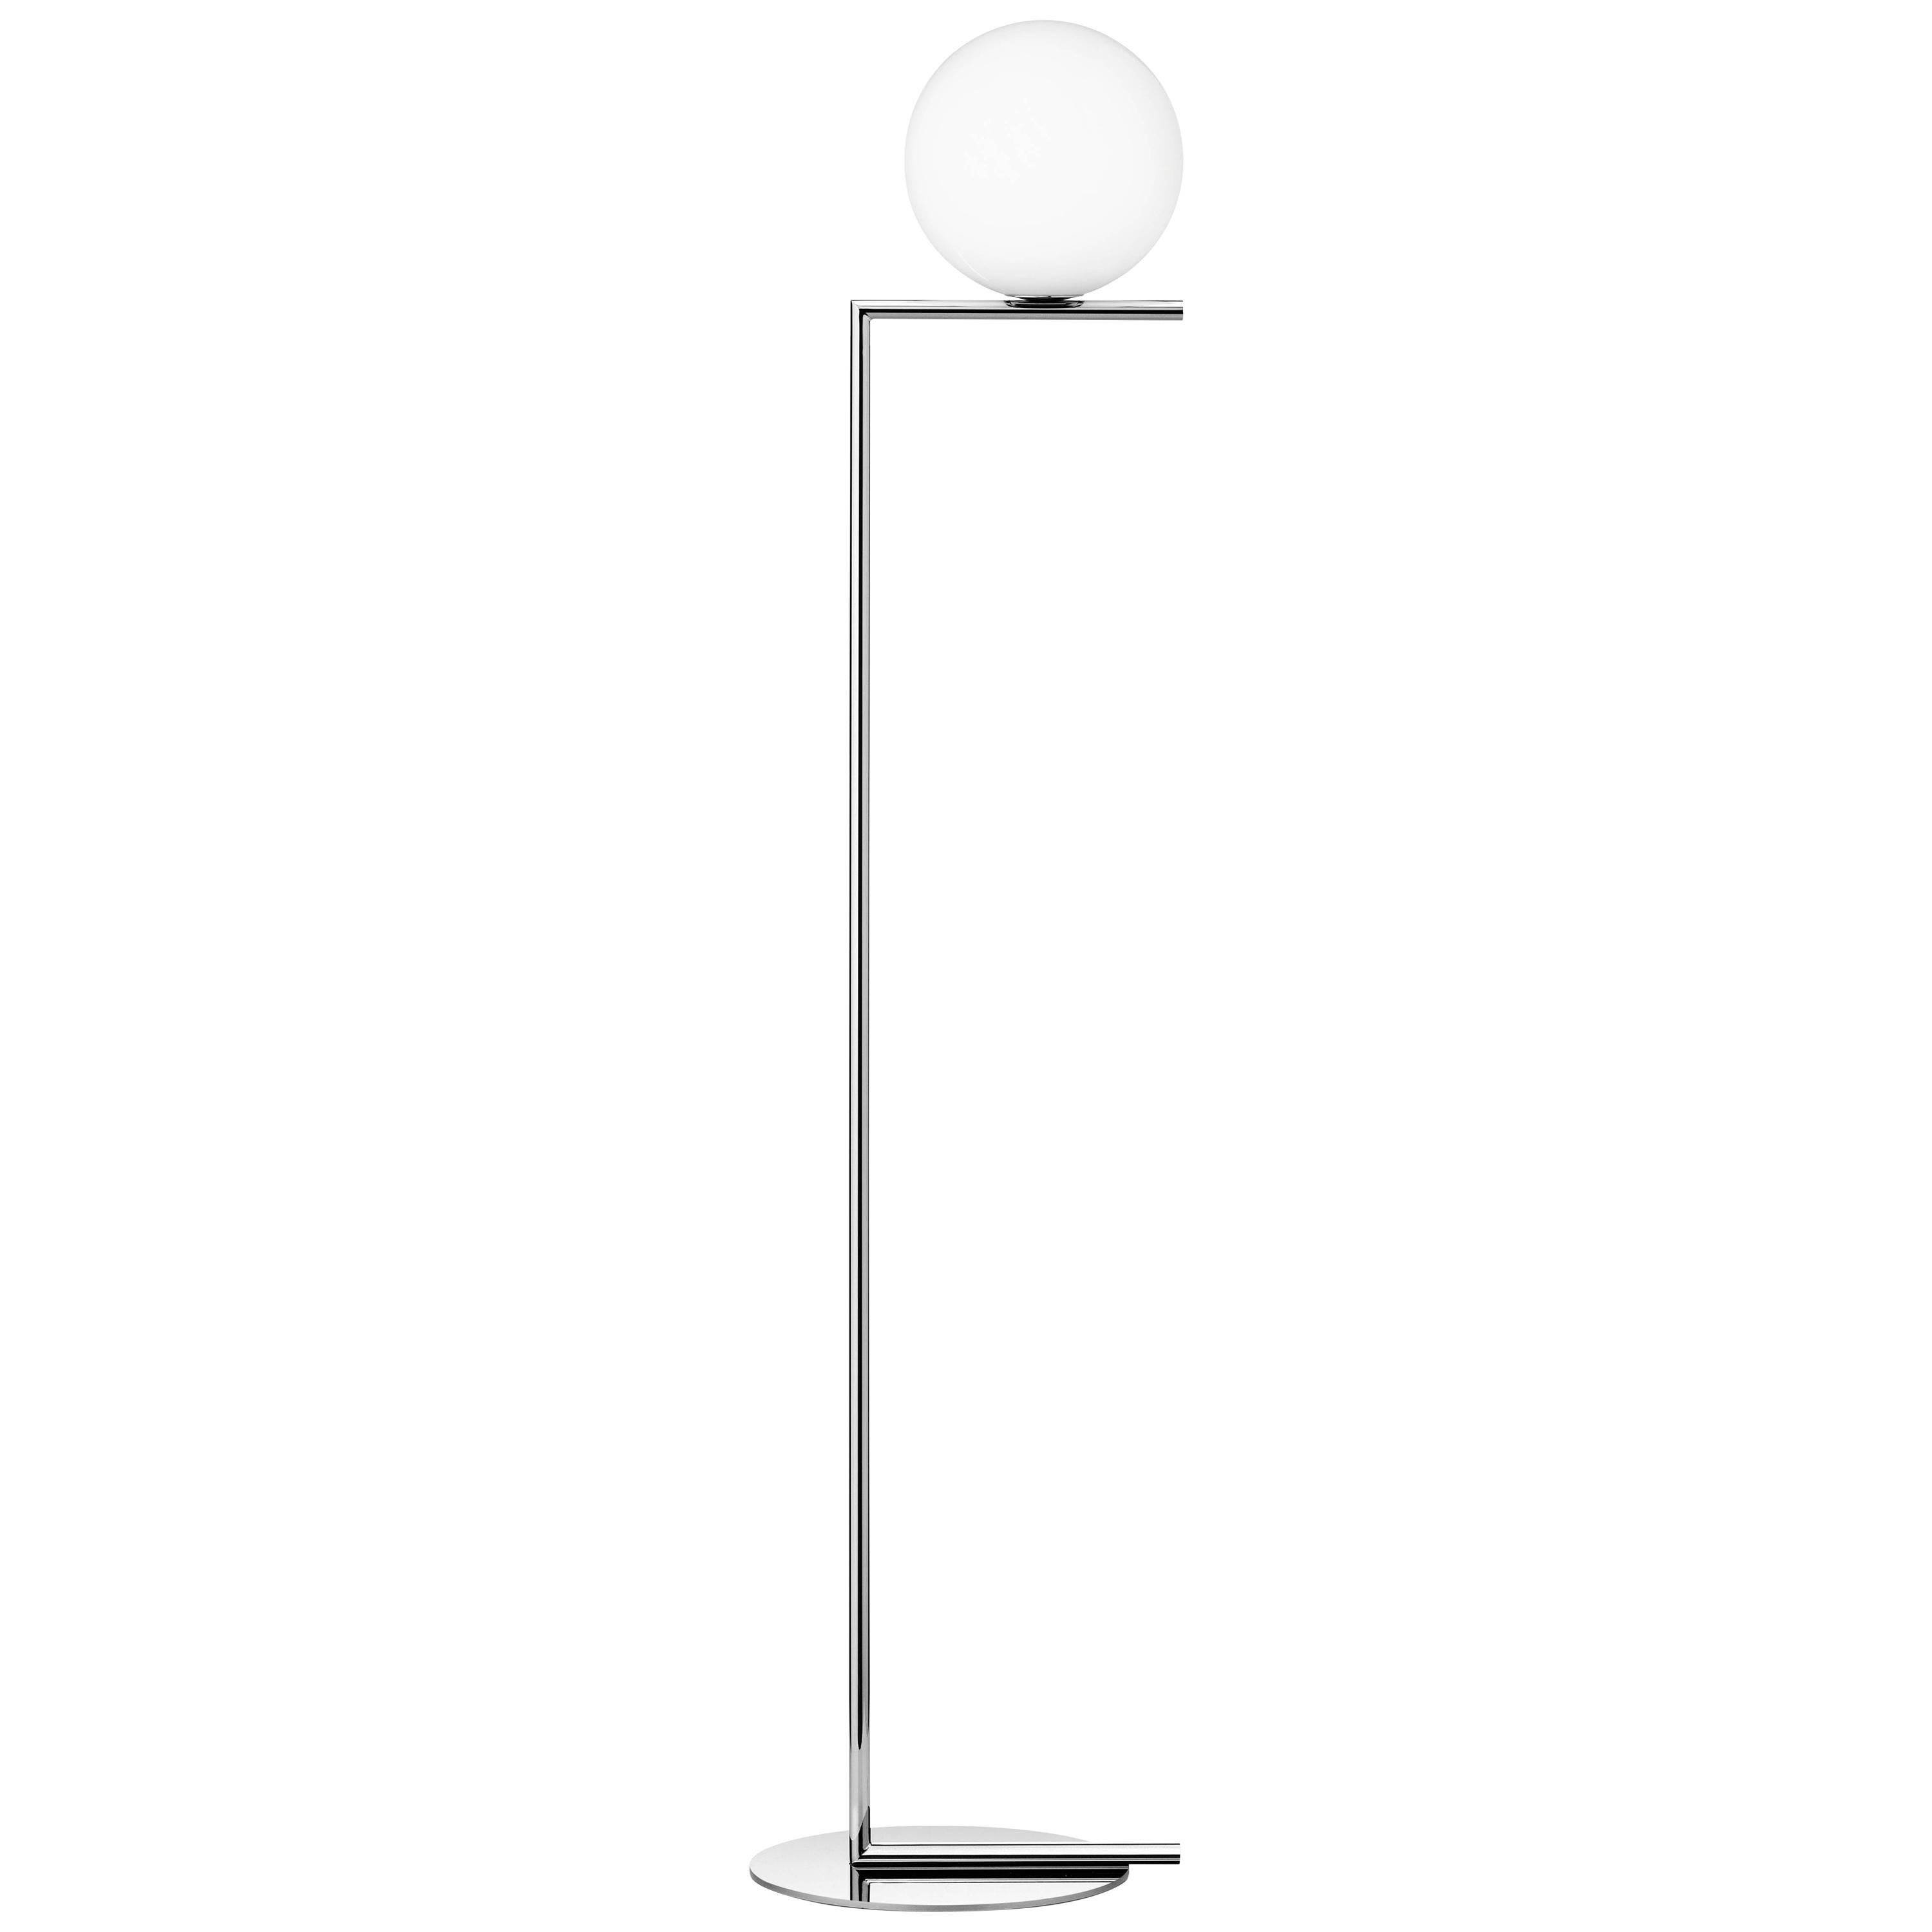 Michael Anastassiades Modern Floor lamp in Chrome Steel Base and Glass for FLOS